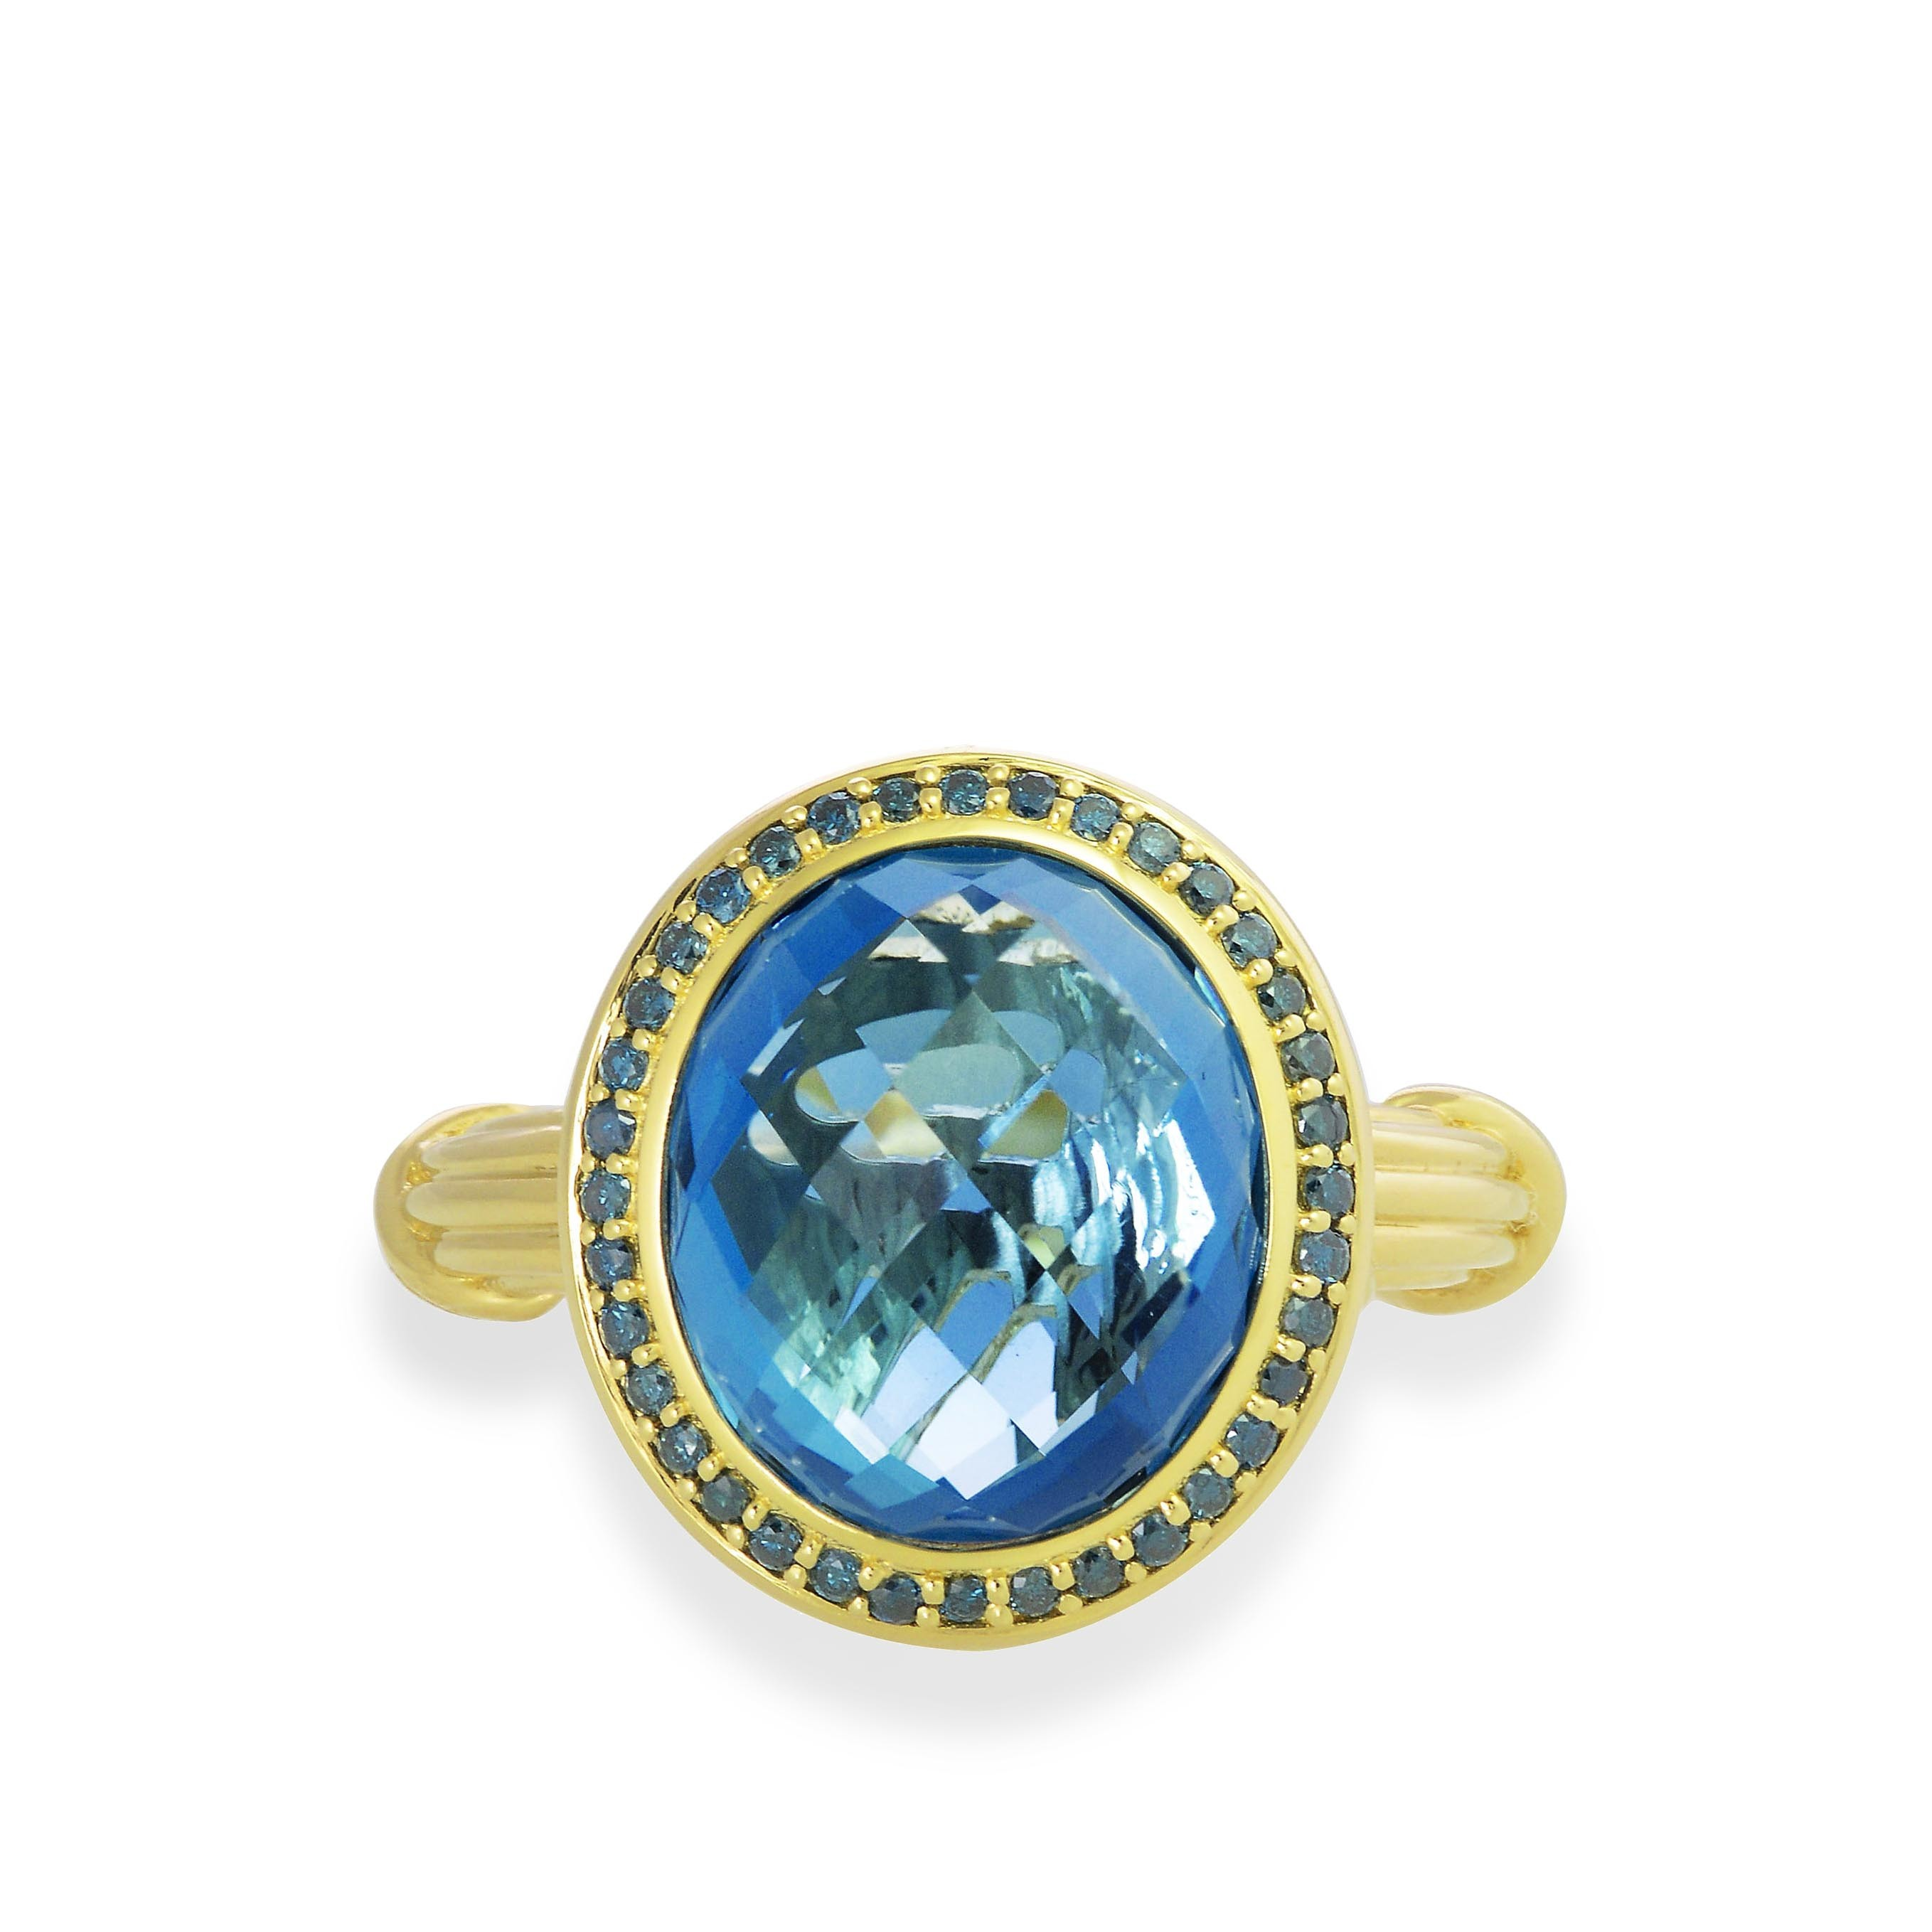 Fantasies London Blue Topaz Halo Ring in 18K yellow gold with blue diamonds